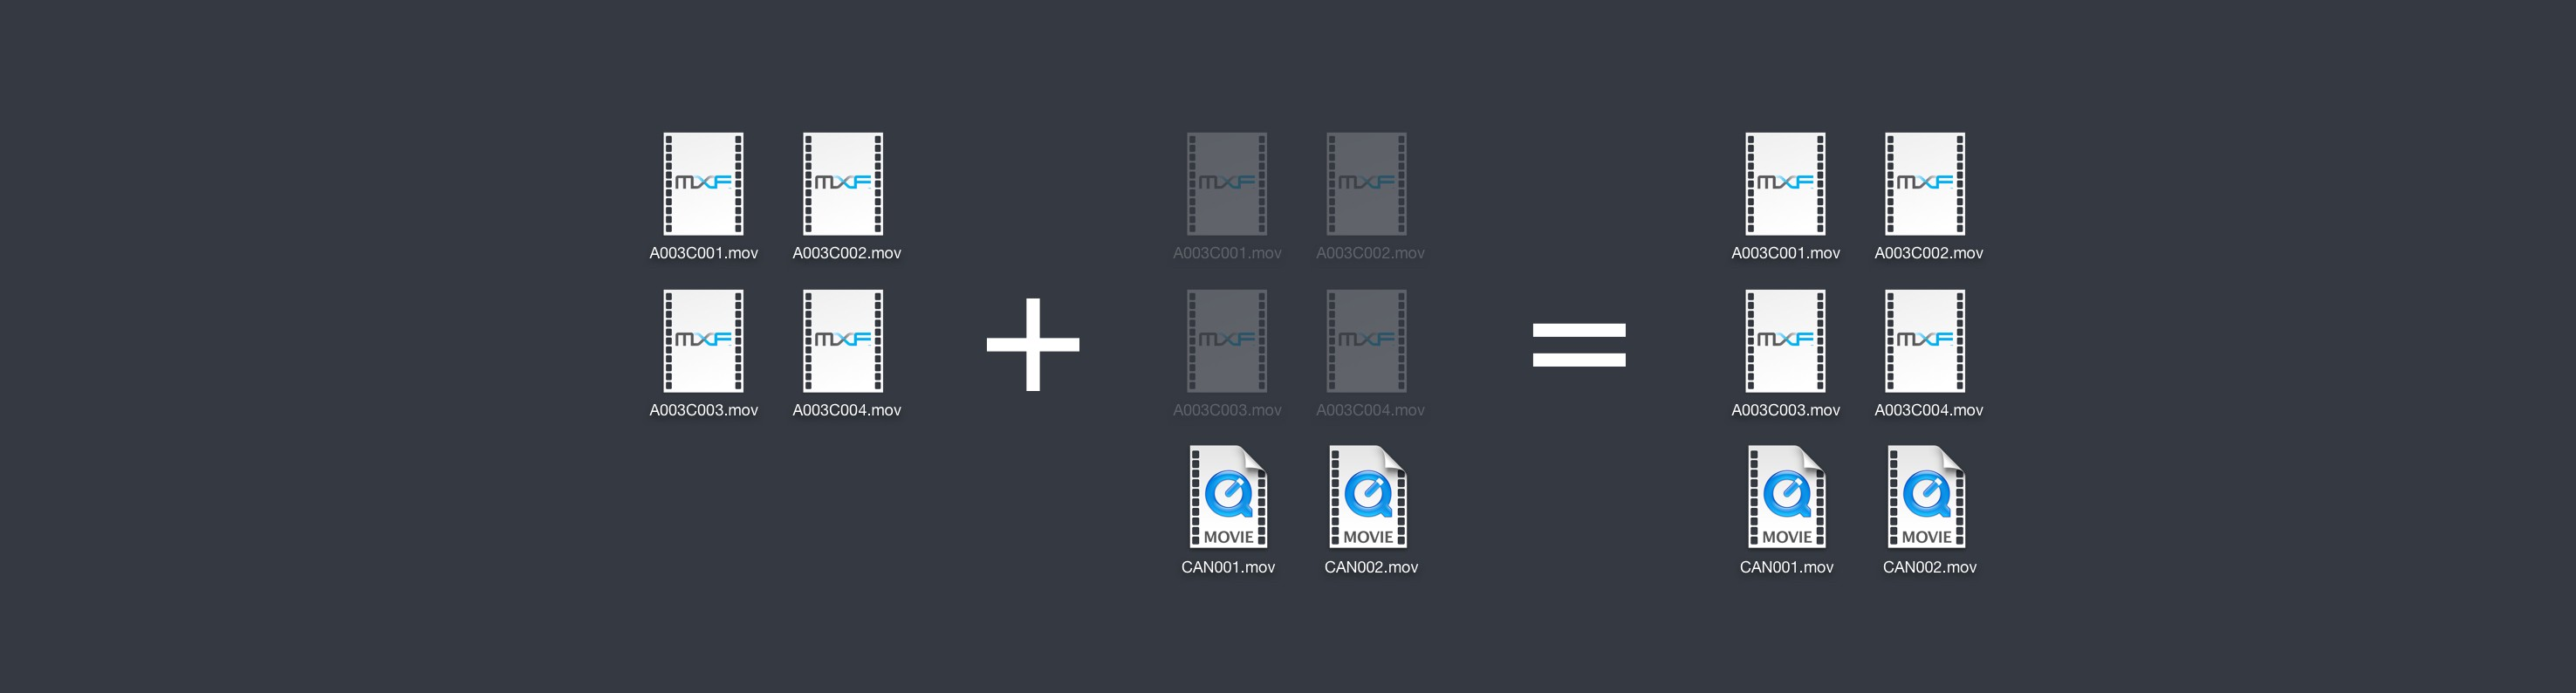 Save time, copy just what's new  - Hedge - backup software for